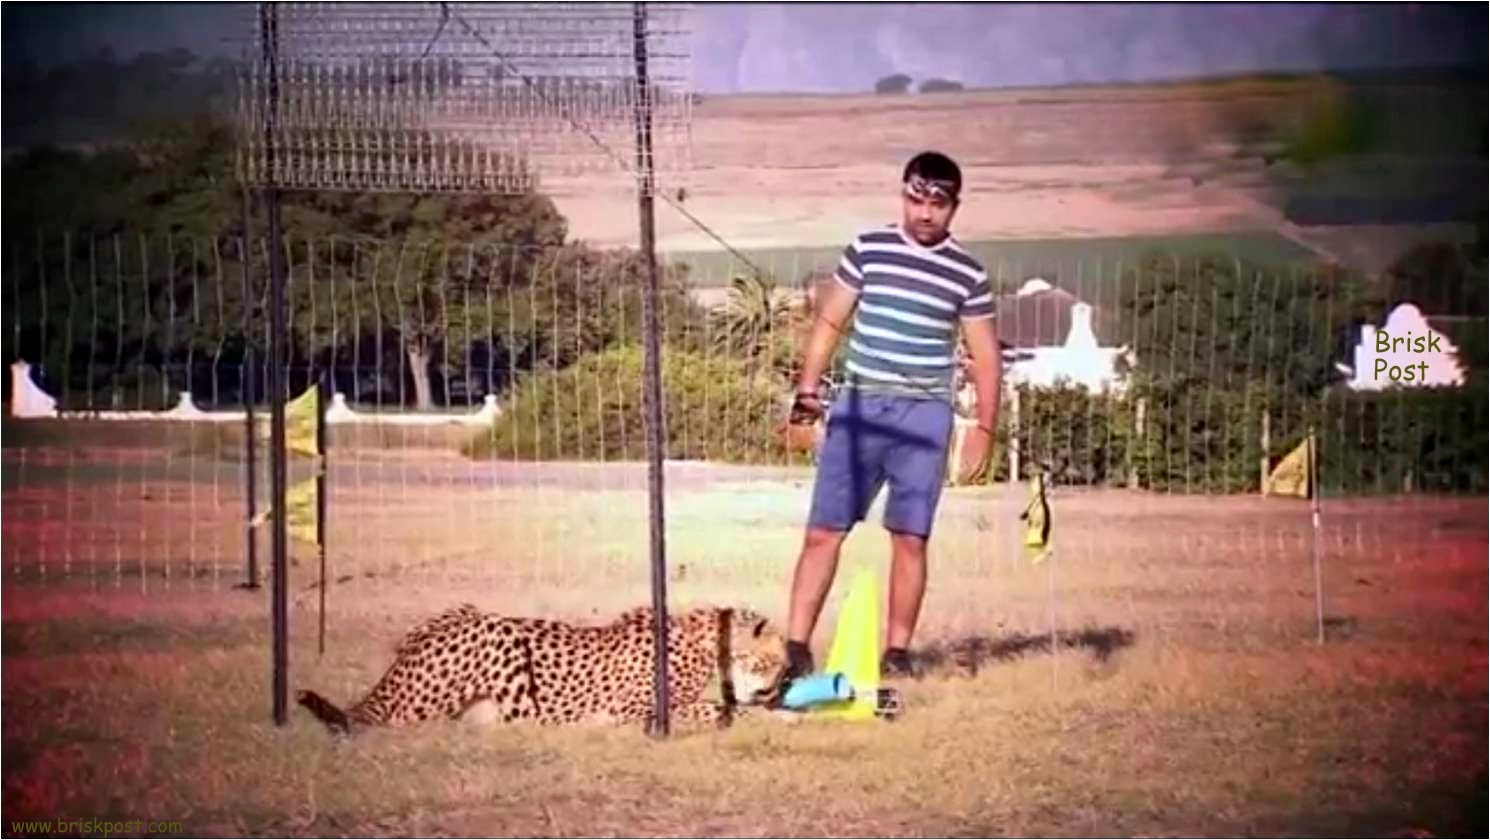 Fear Factor contestant Ajaz Khan near tiger after Aamna Saamna stunt in Khatron Ke Khiladi